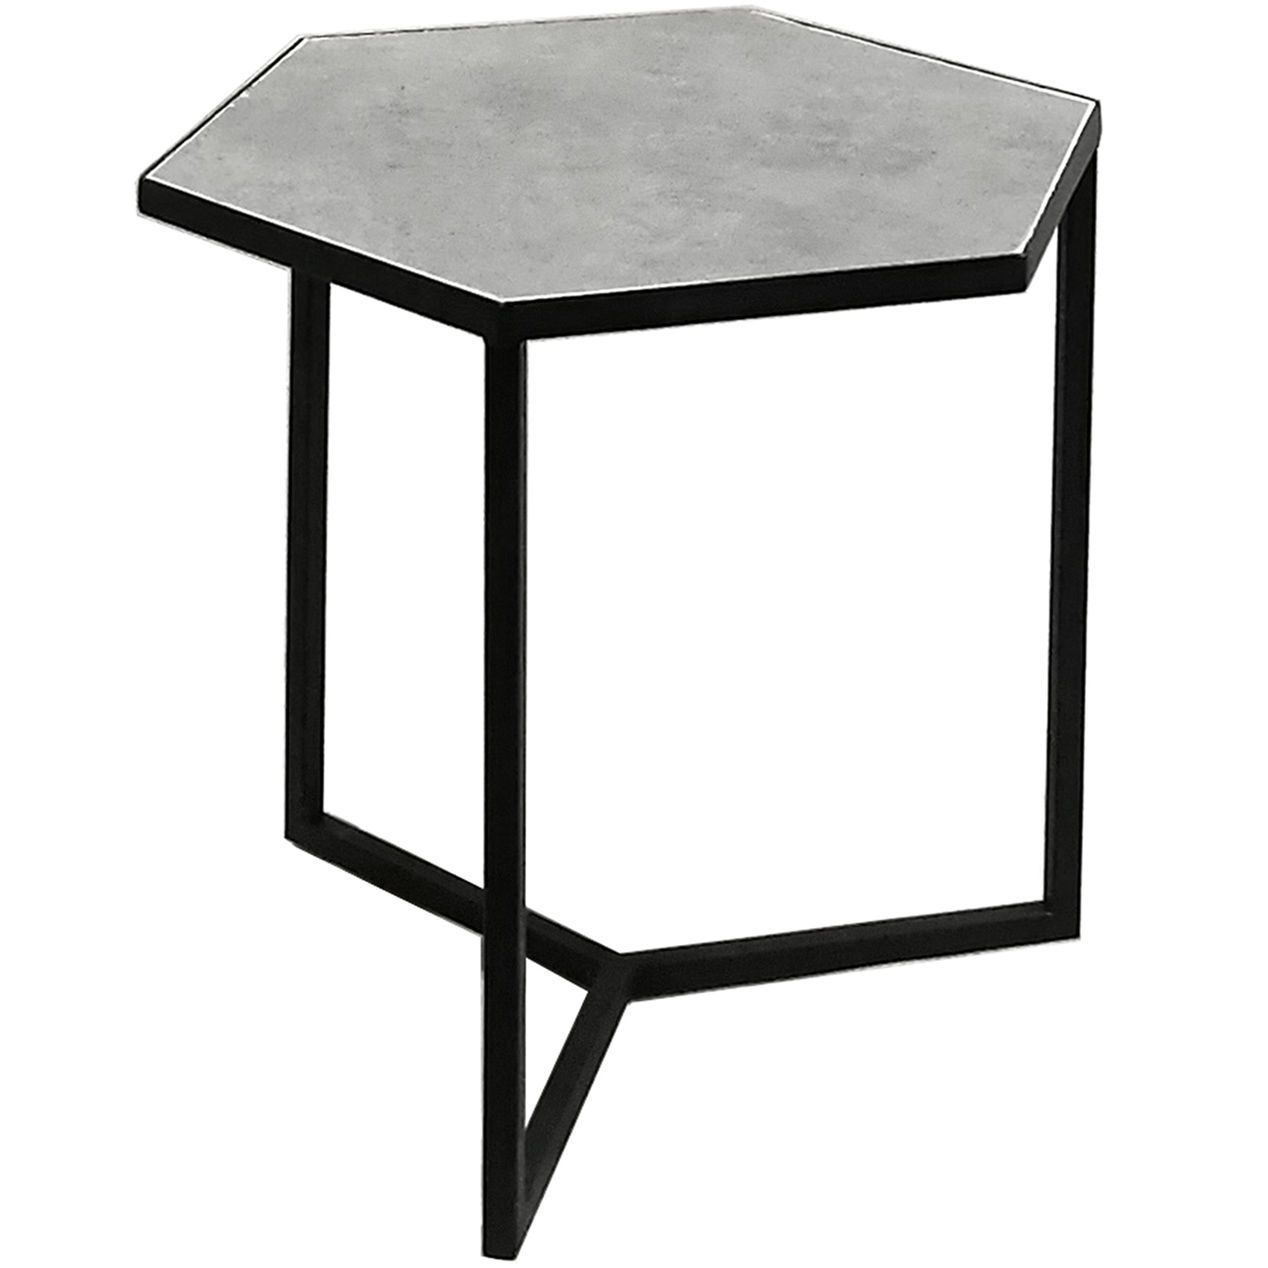 20in Hexagon Stone Table At Home Dining Room Table Patio